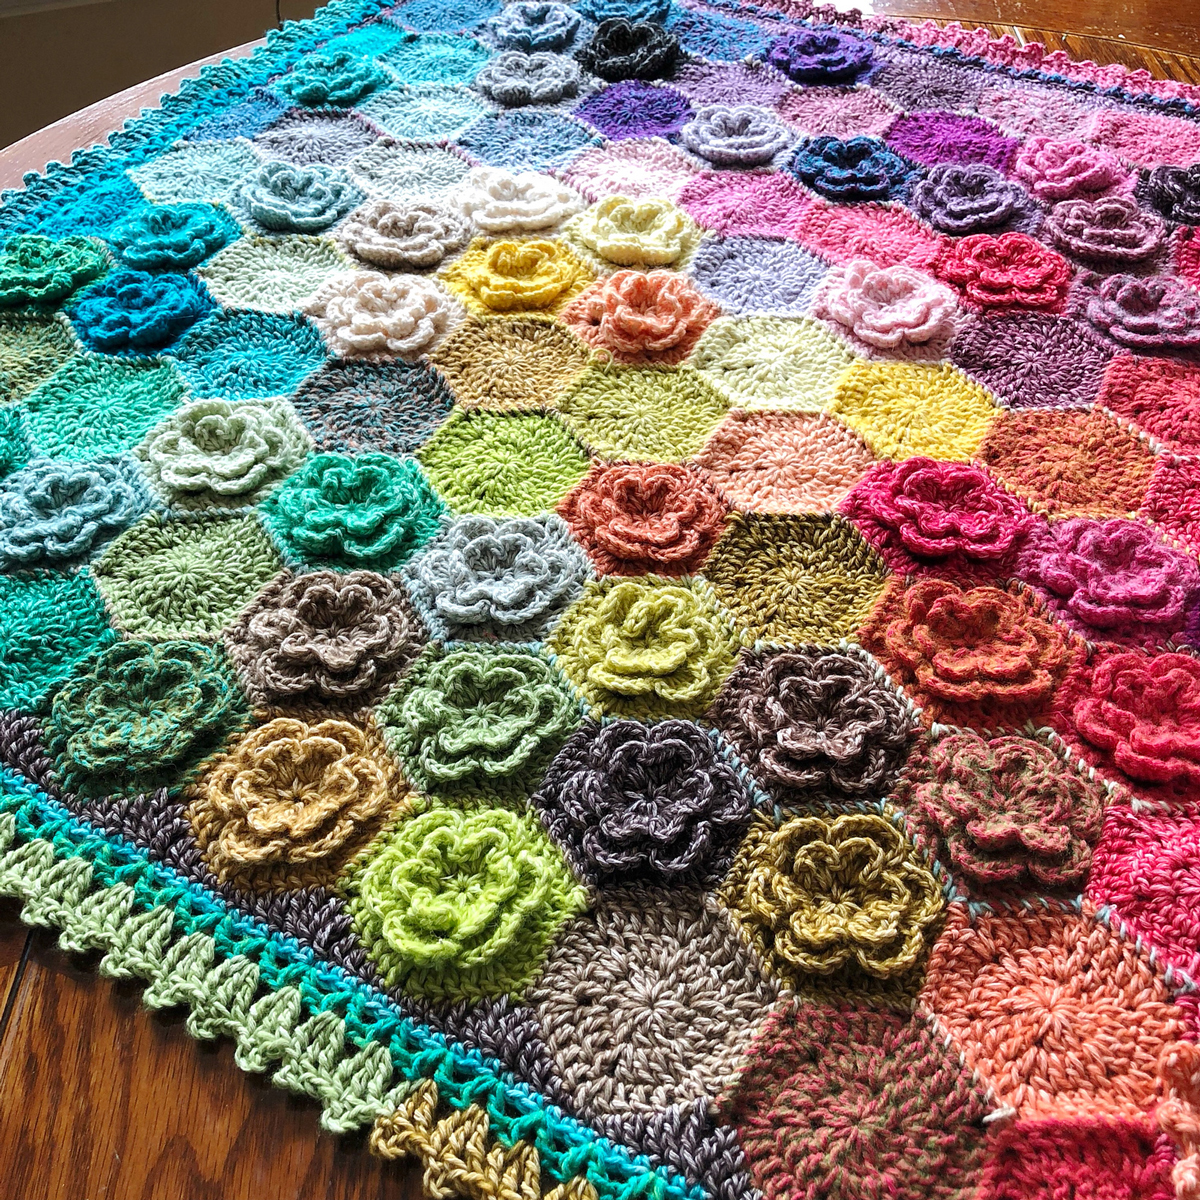 Scheepjes Colour Pack Happy Little Tree Blanket Kit Crochet For Home Kits At Jimmy Beans Wool,How Long Do Cats Live Domestic